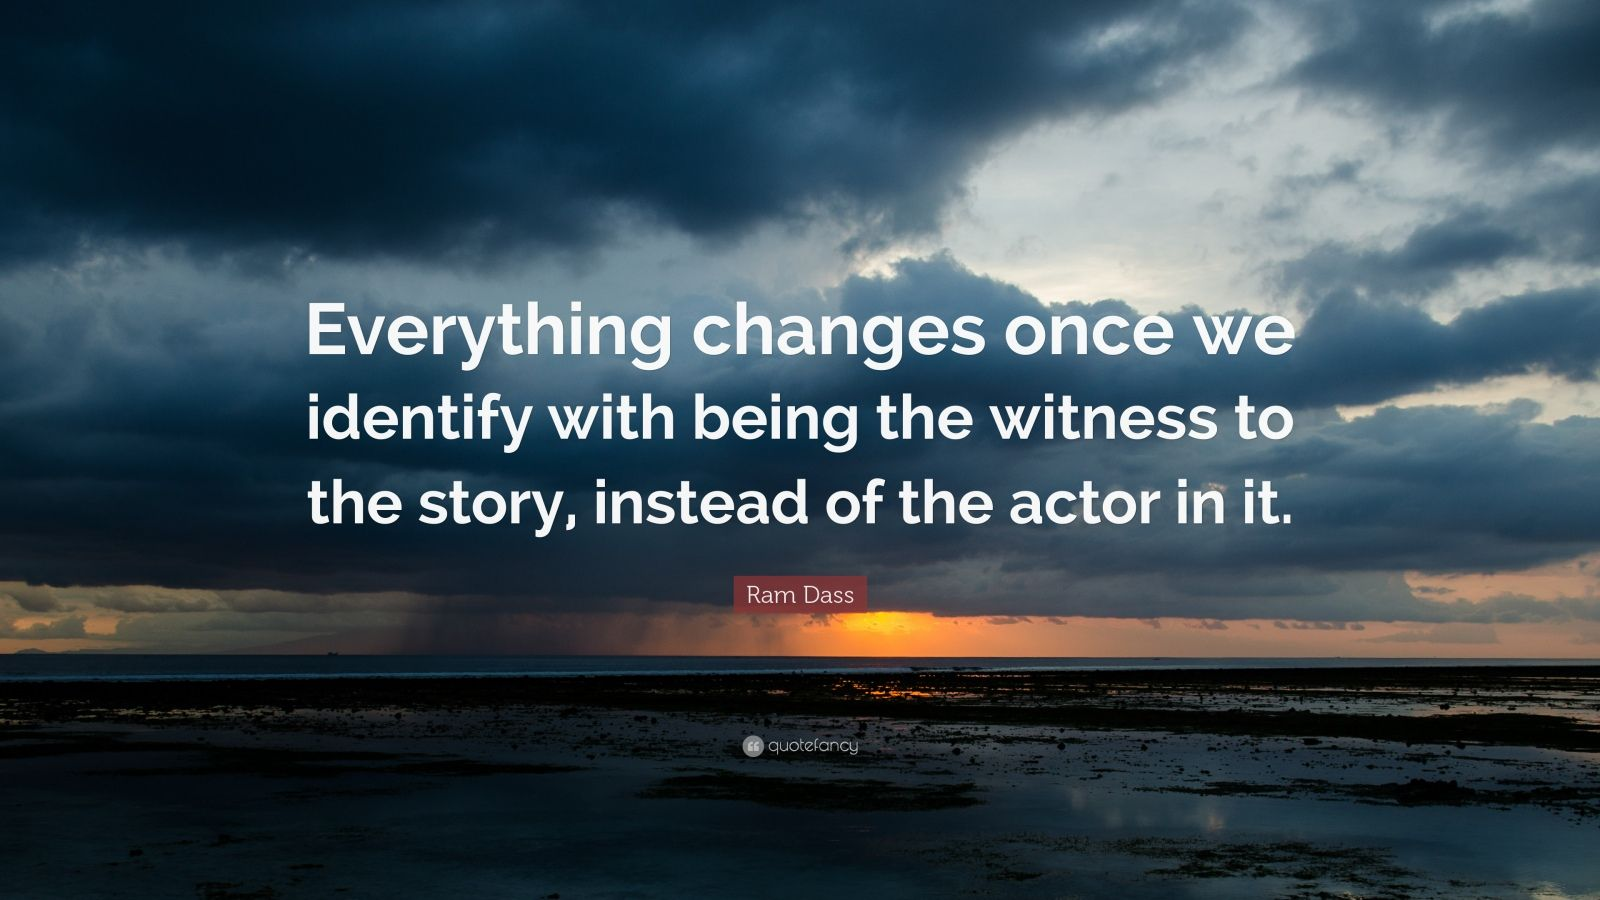 """Ram Dass Quote: """"Everything changes once we identify with being the witness to the story, instead of the actor in it."""""""